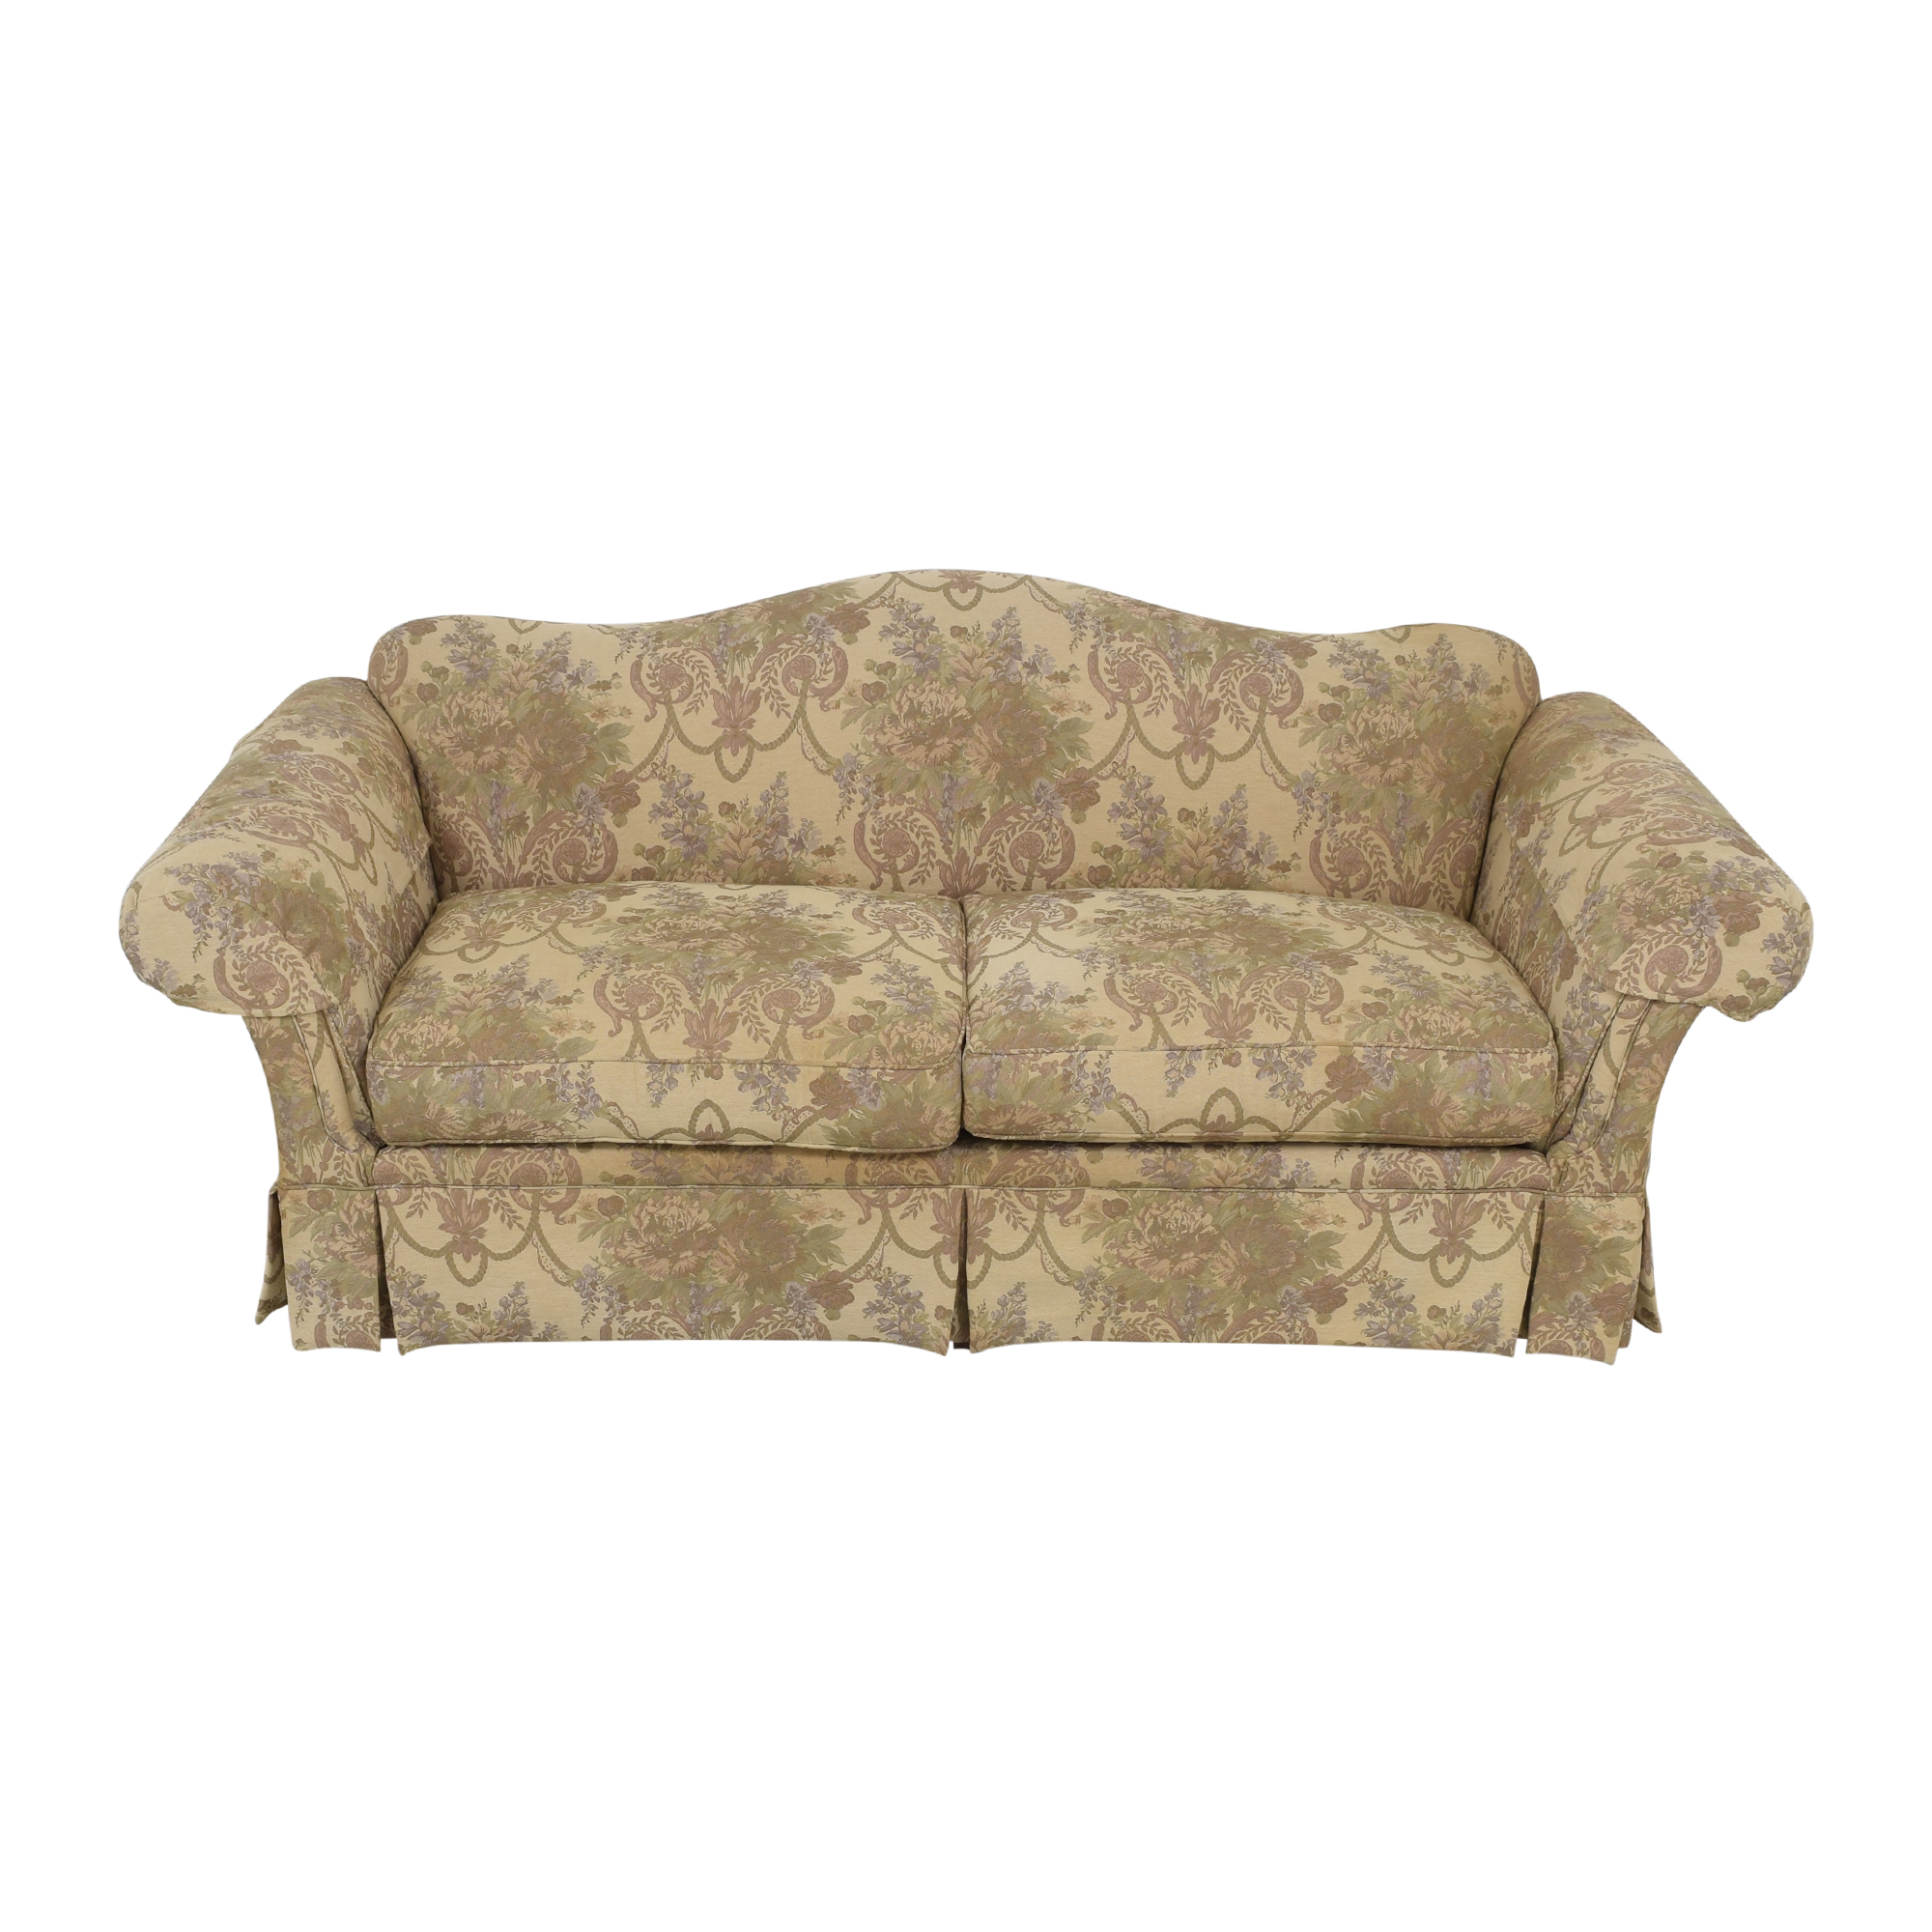 buy Highland House Furniture Highland House Camelback Sofa online